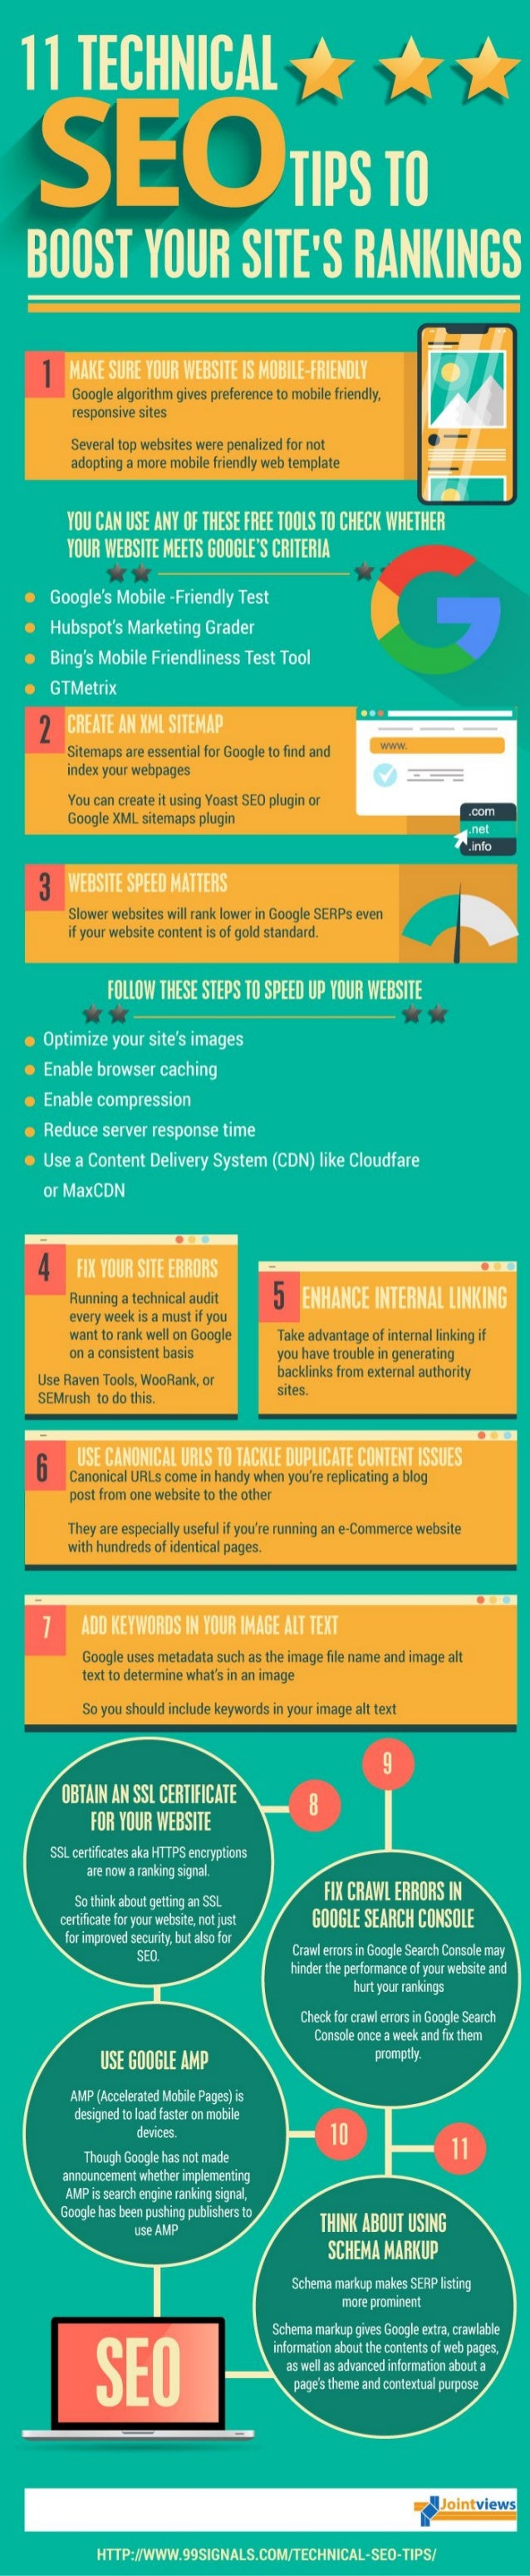 11 Technical SEO Tips to Boost Your Website's SERP Rankings [Infographic]